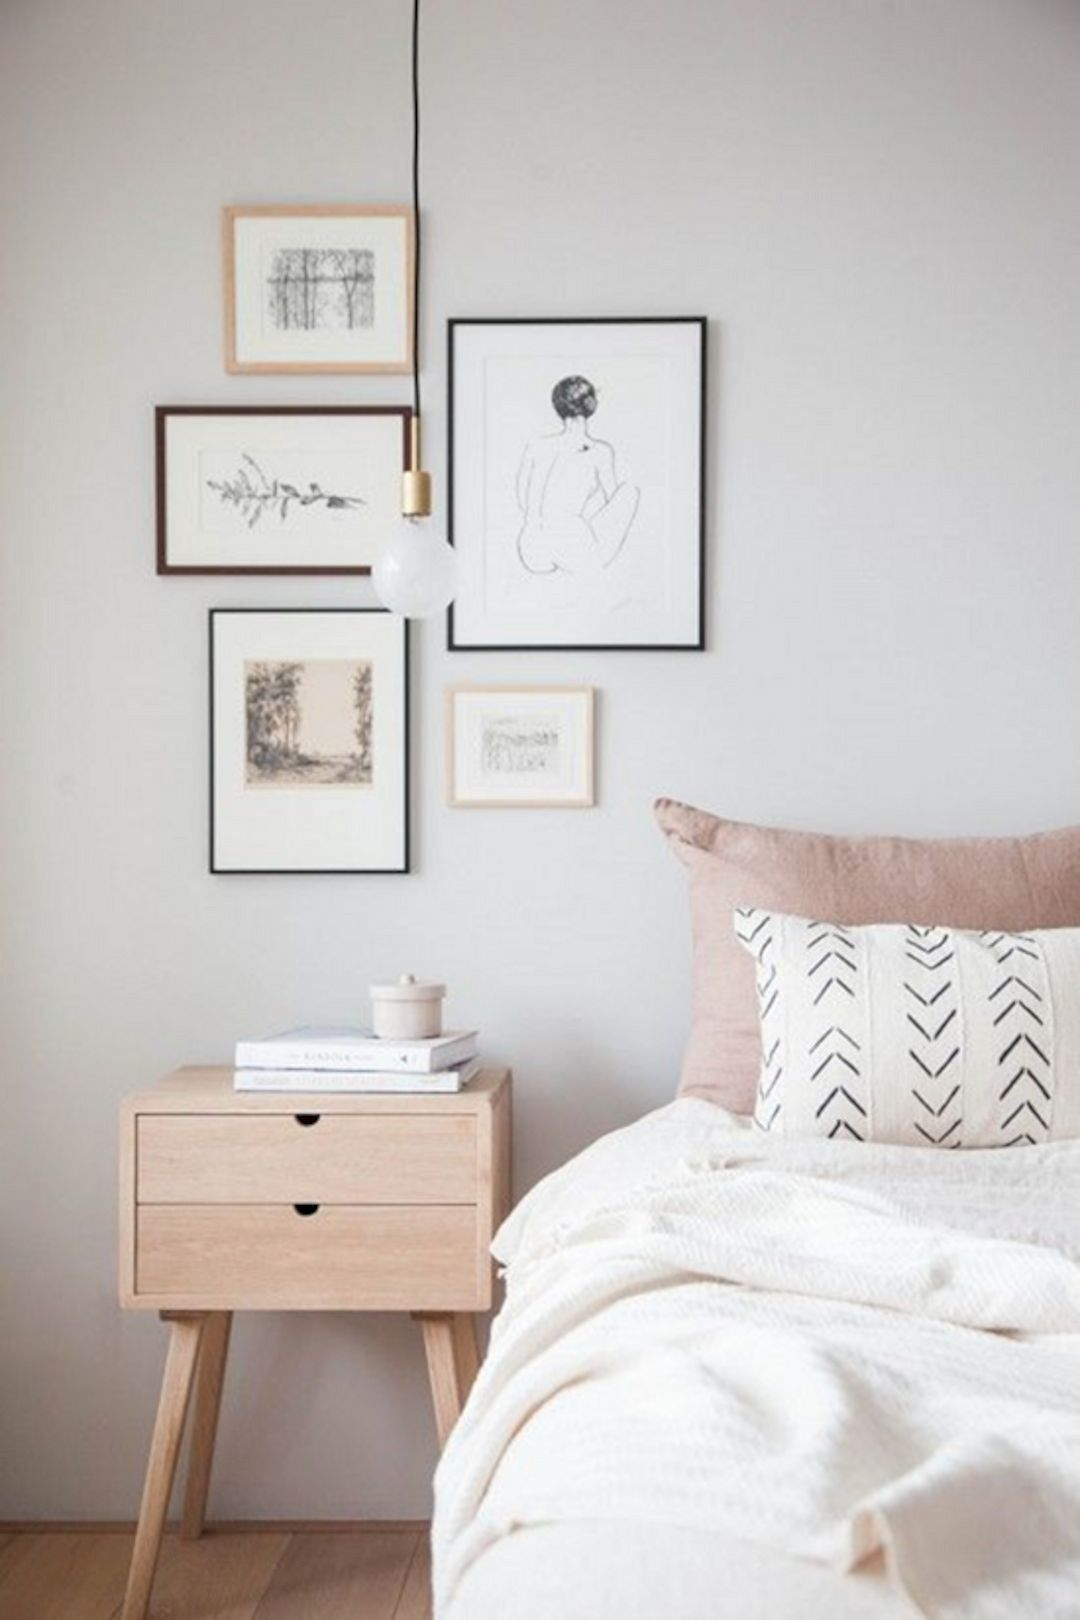 Gorgeous Minimalist Home Decor Ideas | Couture, Interiores y Inspiración